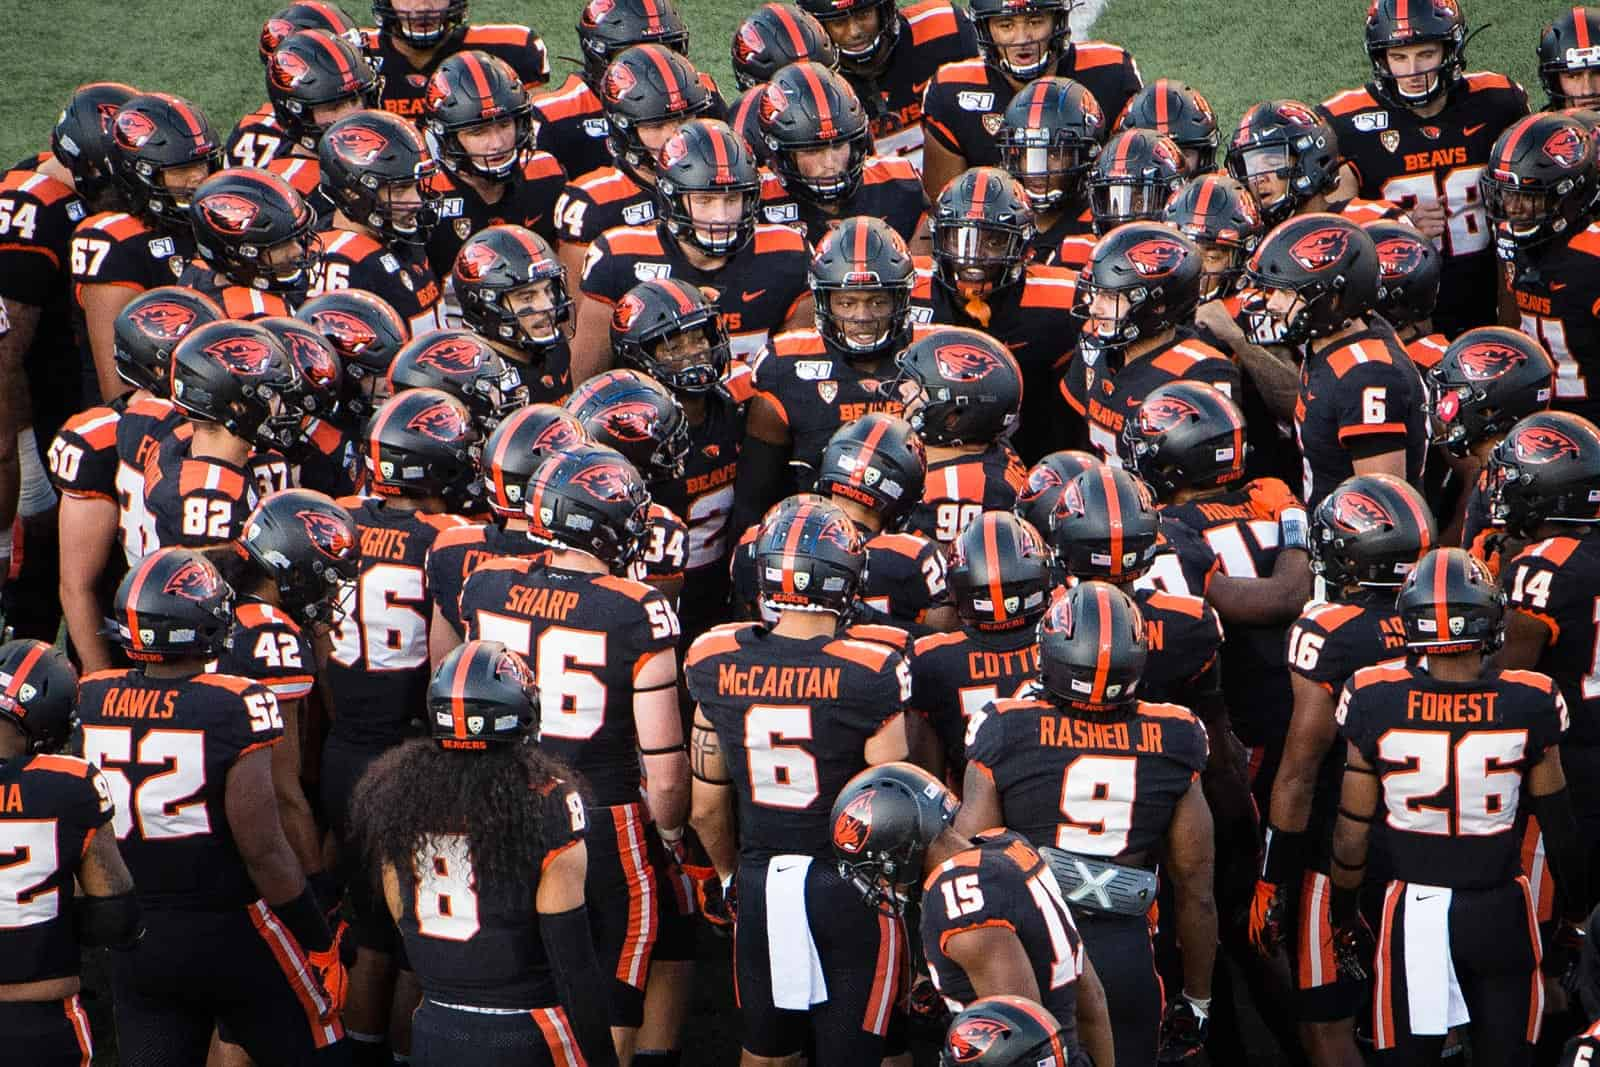 Oregon State Beavers